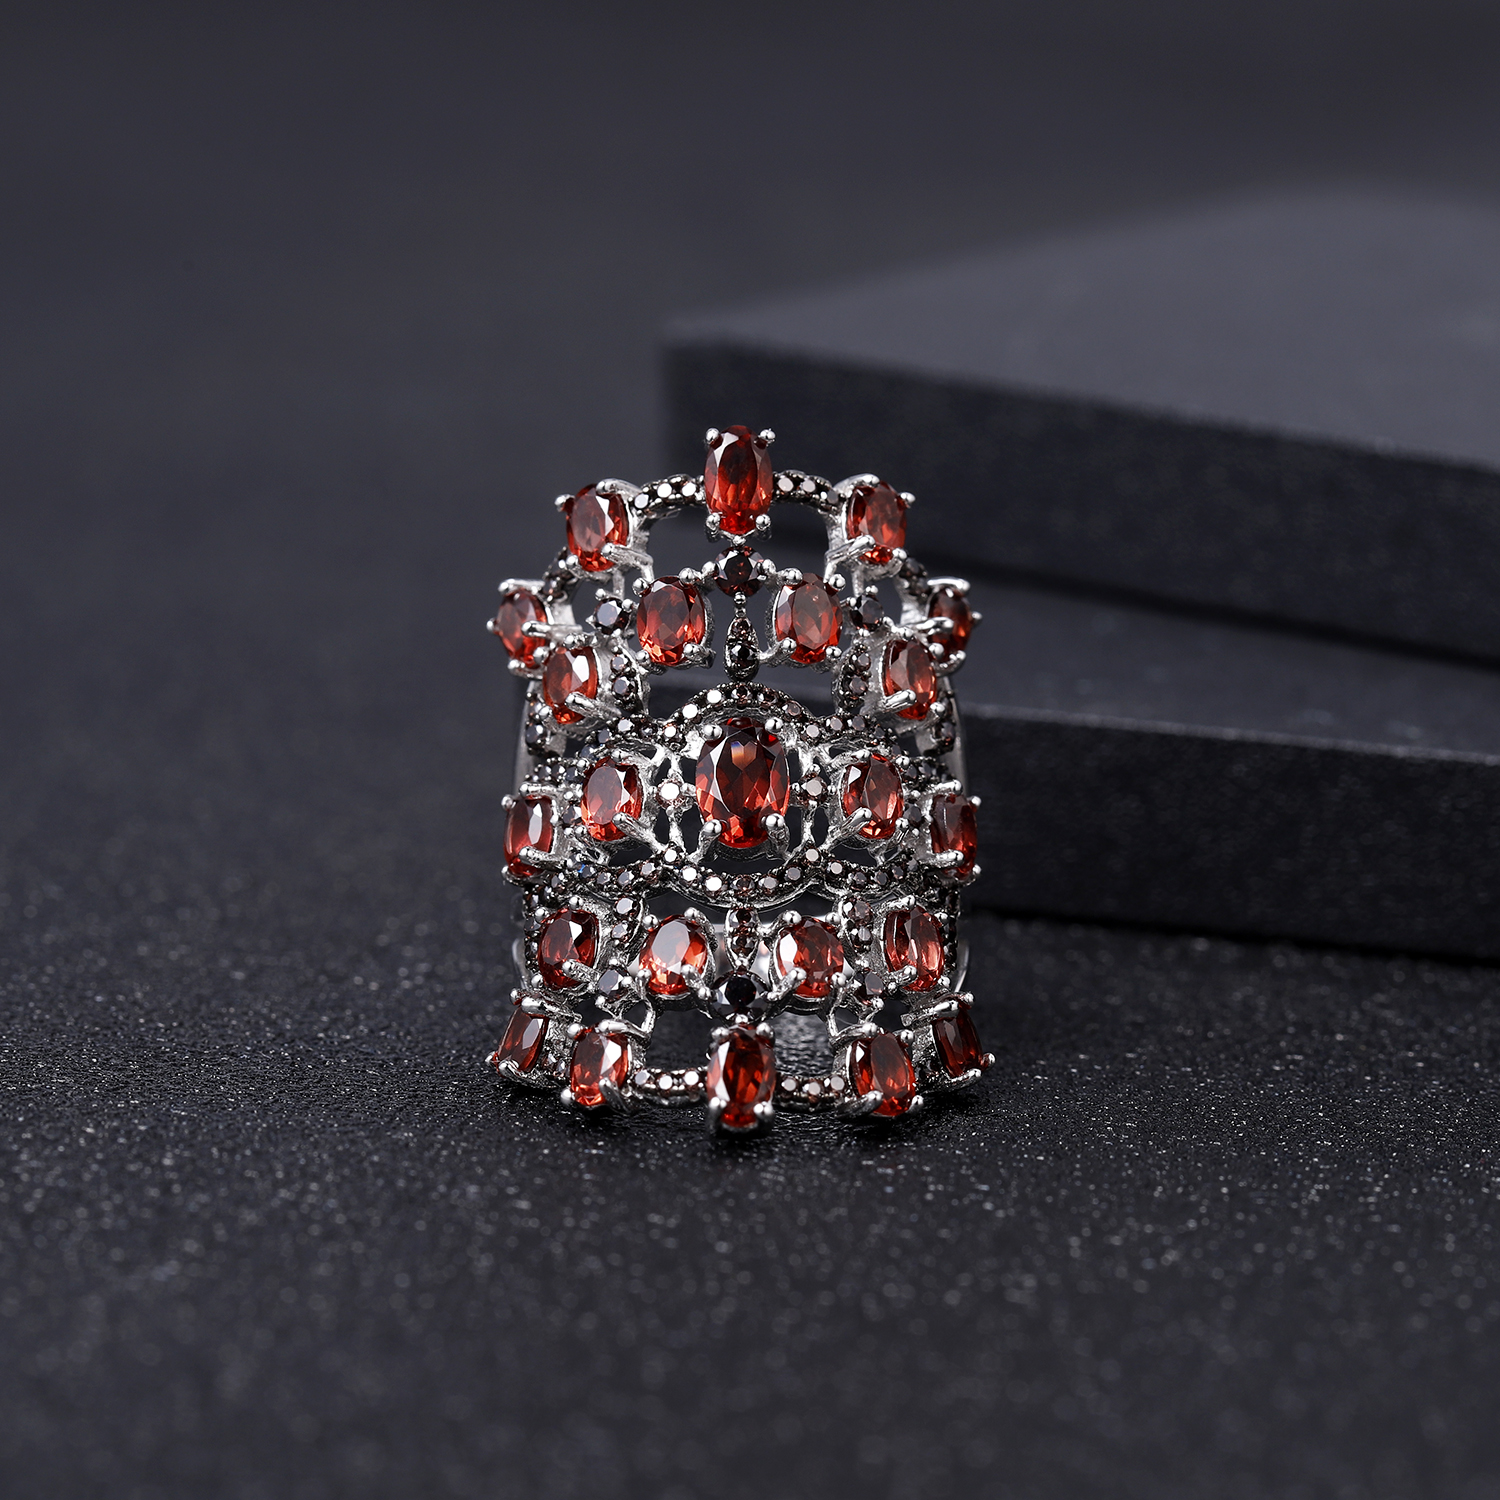 GEM'S BALLET 8.37Ct Natural Red Garnet Rings 925 Sterling Silver Luxury Gemstone Ring For Women Anniversary Fine Jewelry